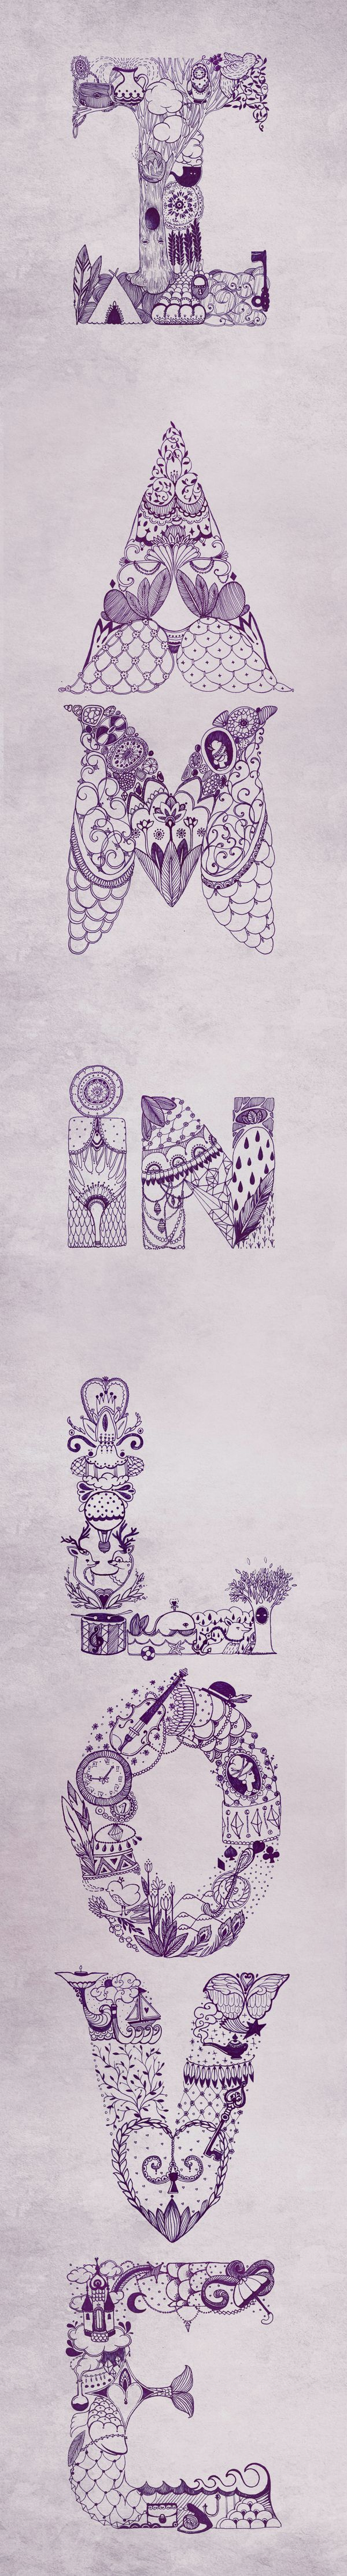 Type: Ideas, In Love, Inspiration, Illustration, Typo Drawings, A Tattoo, Love Doodles, Typography, Letters